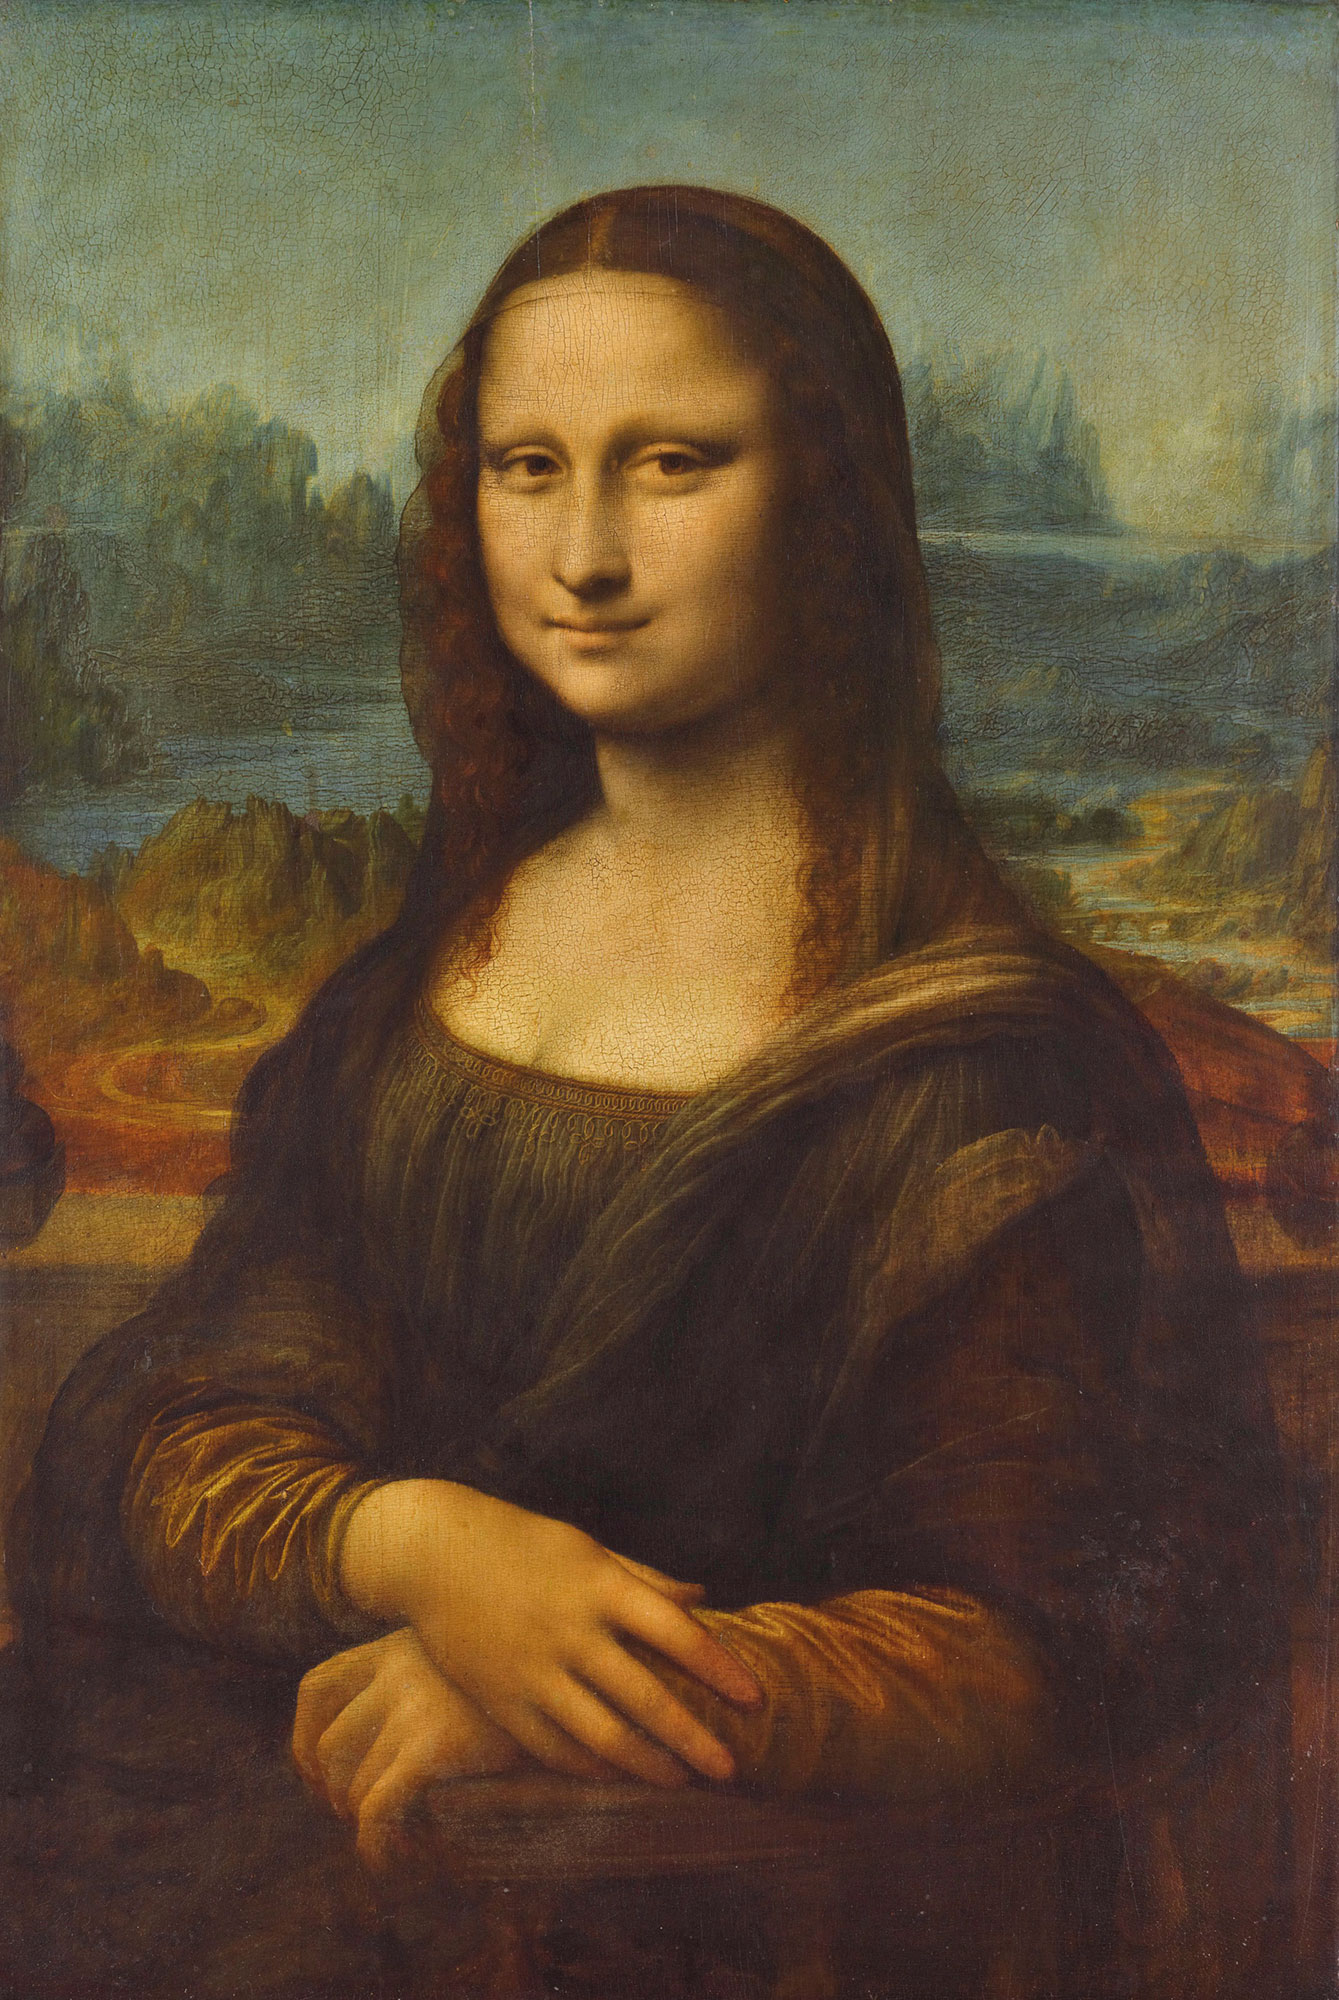 Leonardo da Vinci, Mona Lisa, circa 1502. Musée du Louvre, Paris. Photo Scala  Art Resource